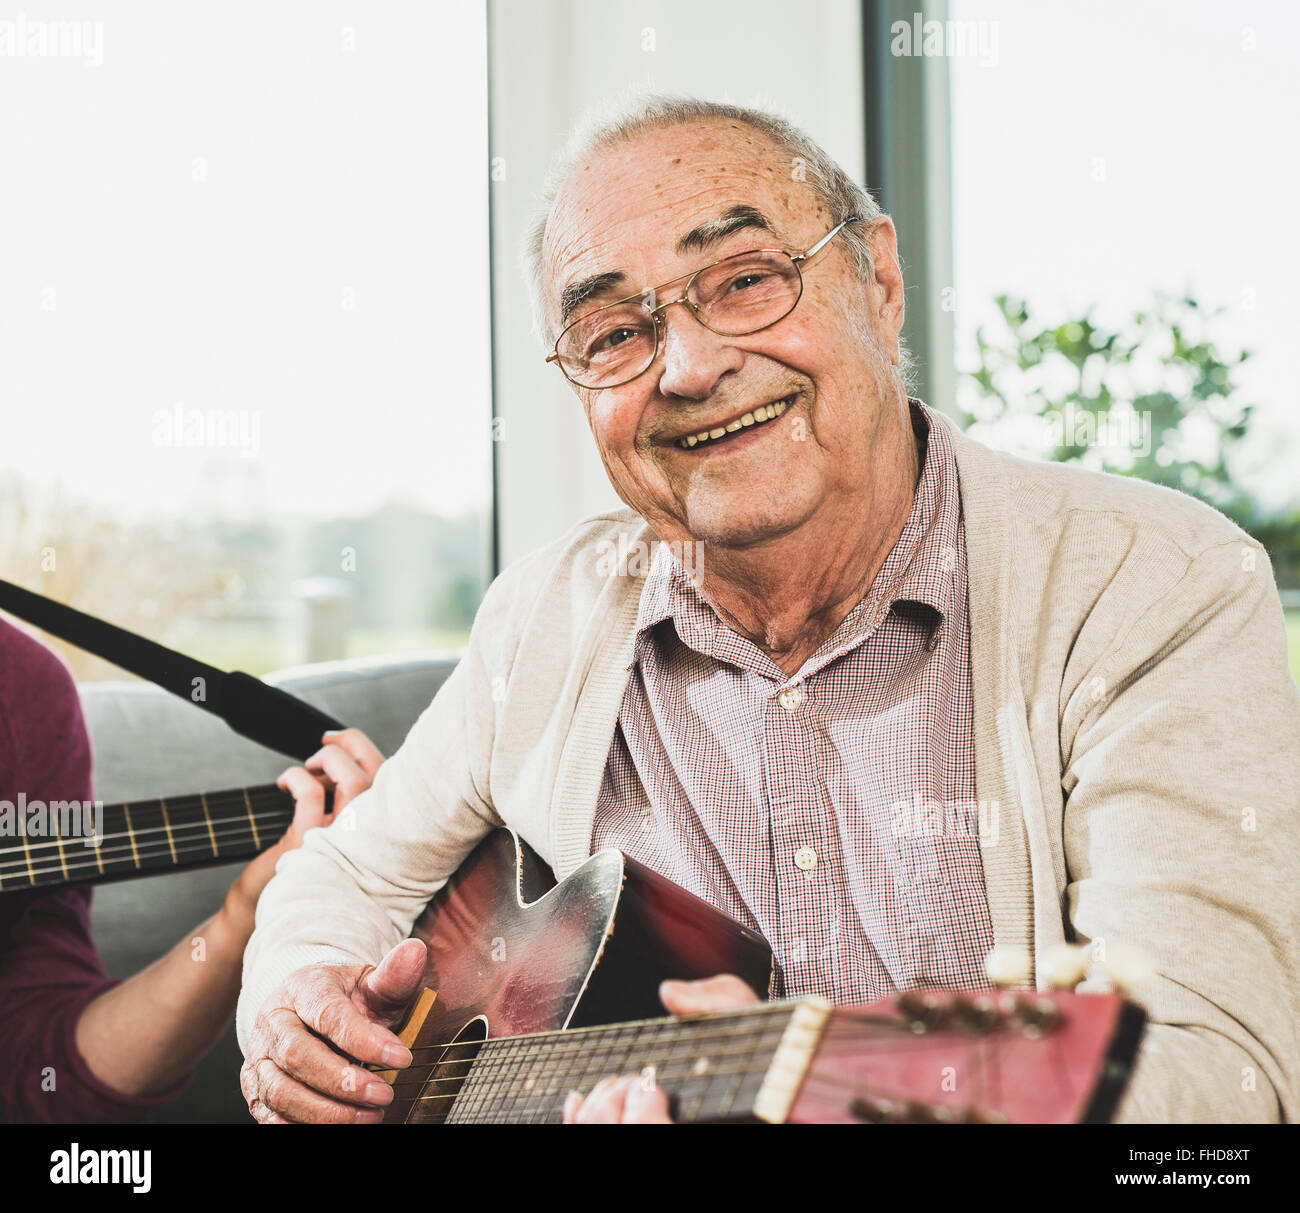 Portrait of senior man playing guitar - Stock Image